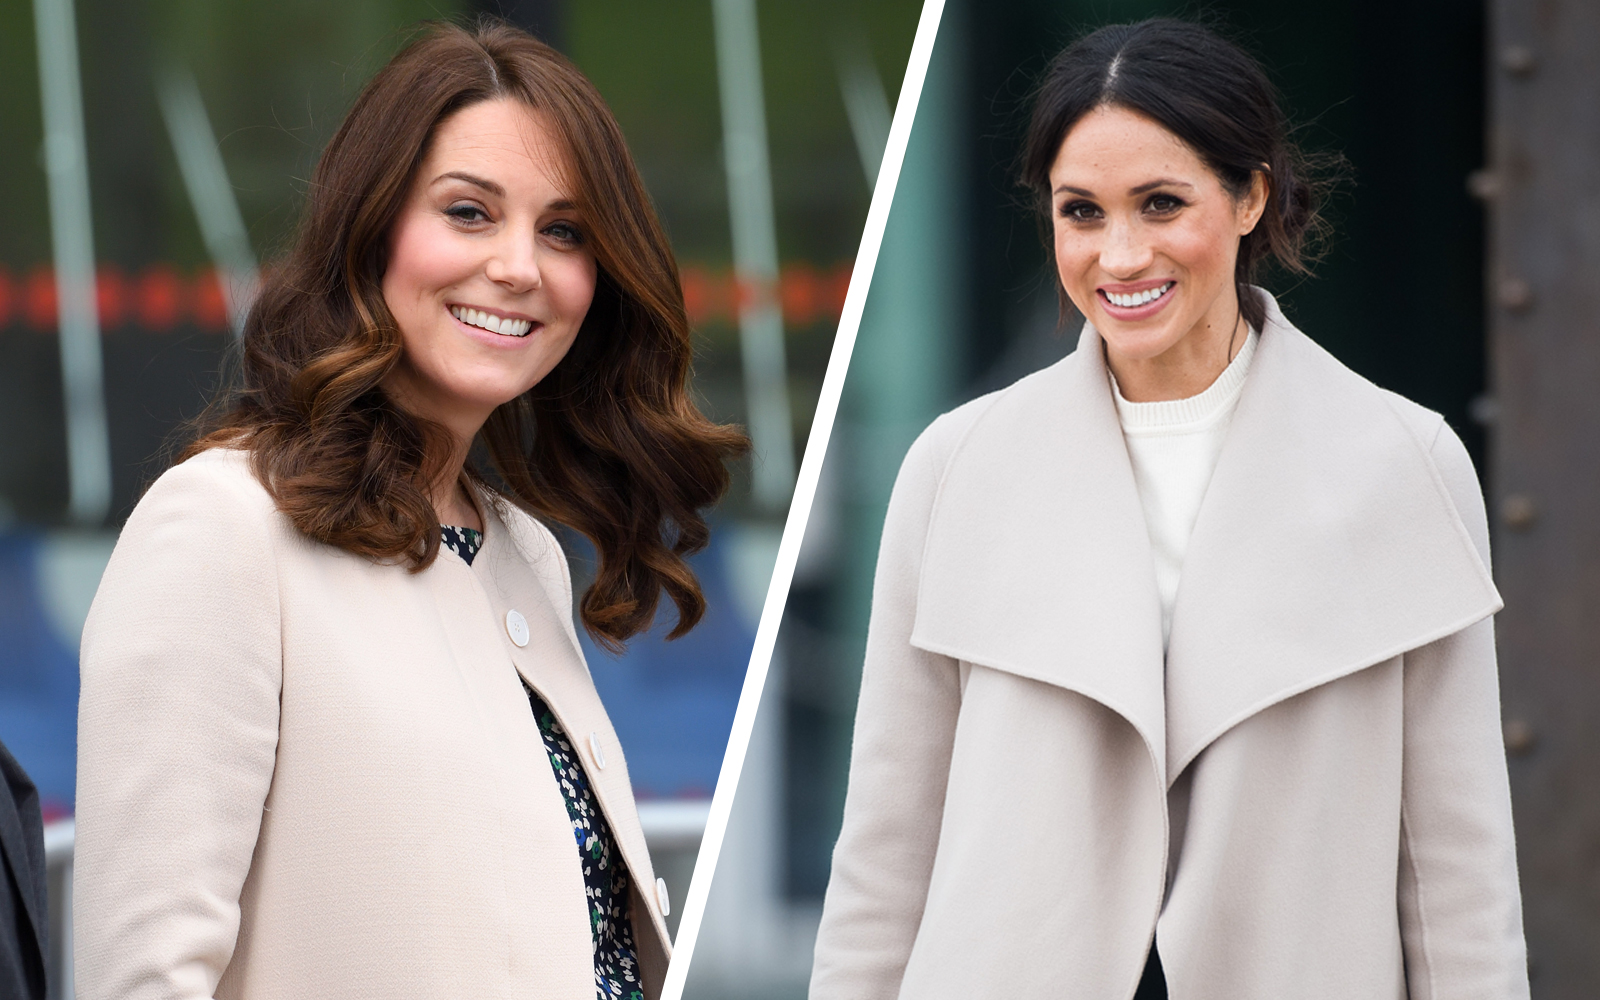 Kate Middleton Is Reportedly Meghan Markle's Royal Stylist Behind the Scenes